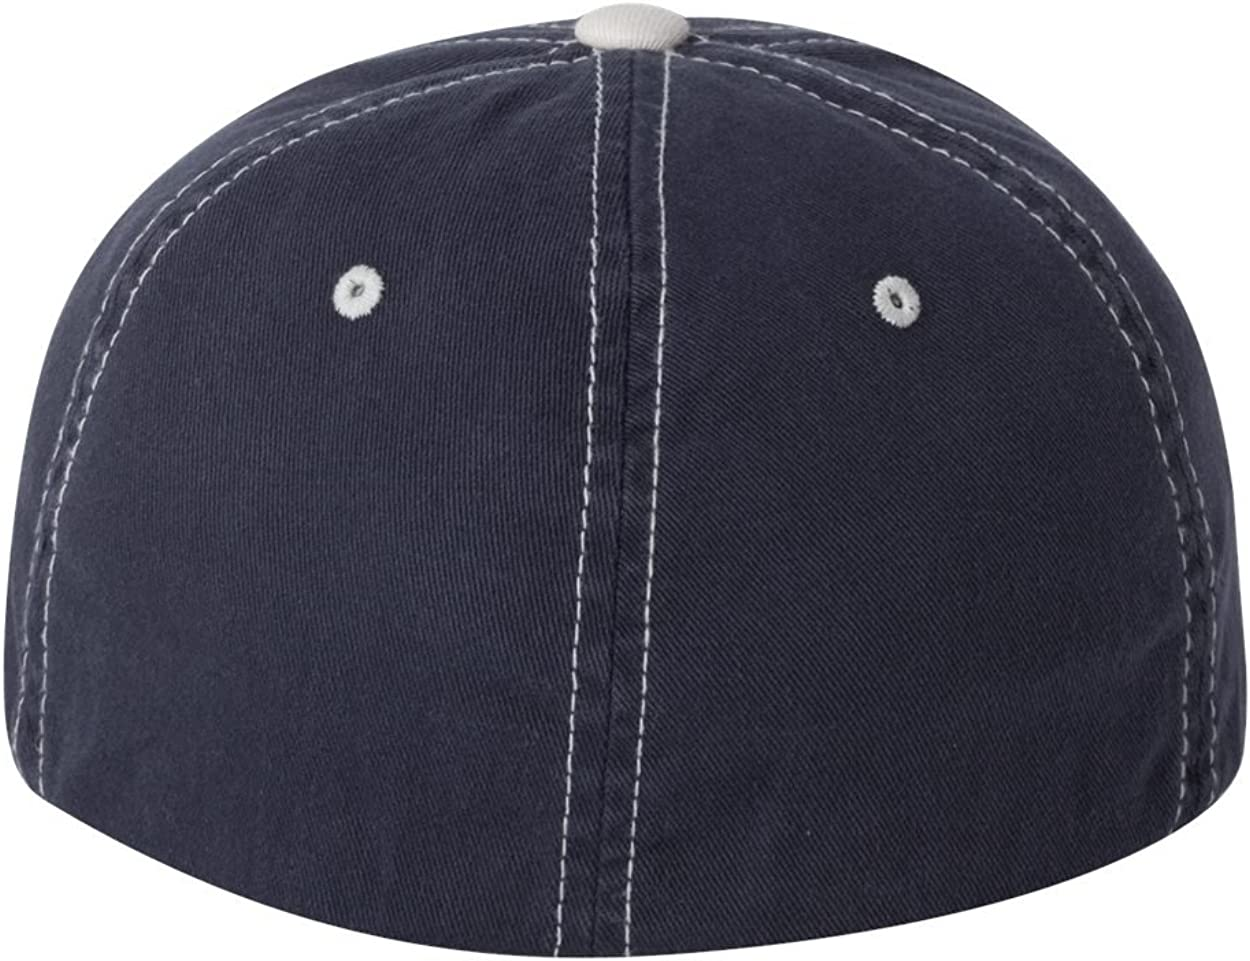 Contrast Color Stitched Cap Flexfit 6386